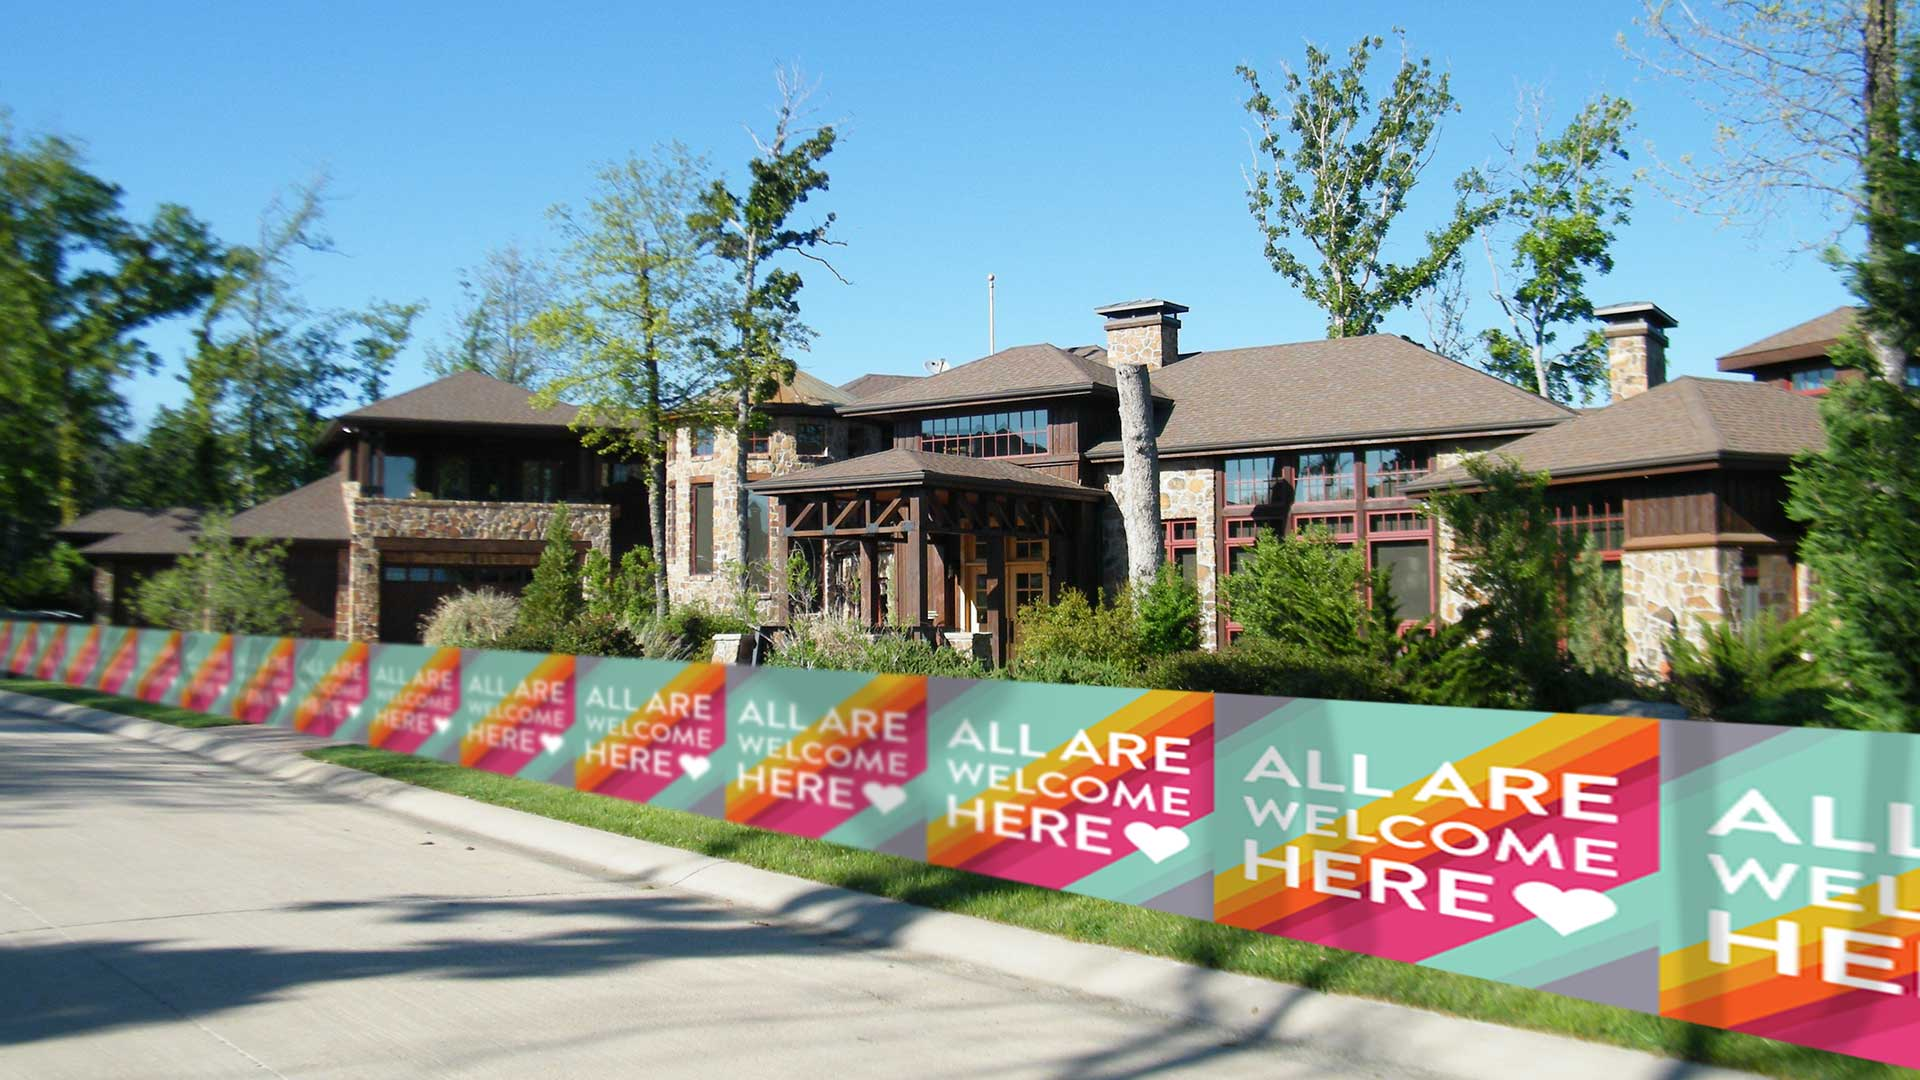 Longfellow-Residents-Invest-in-Single,-Mile-Long-All-Are-Welcome-Here-Lawn-Sign.jpg